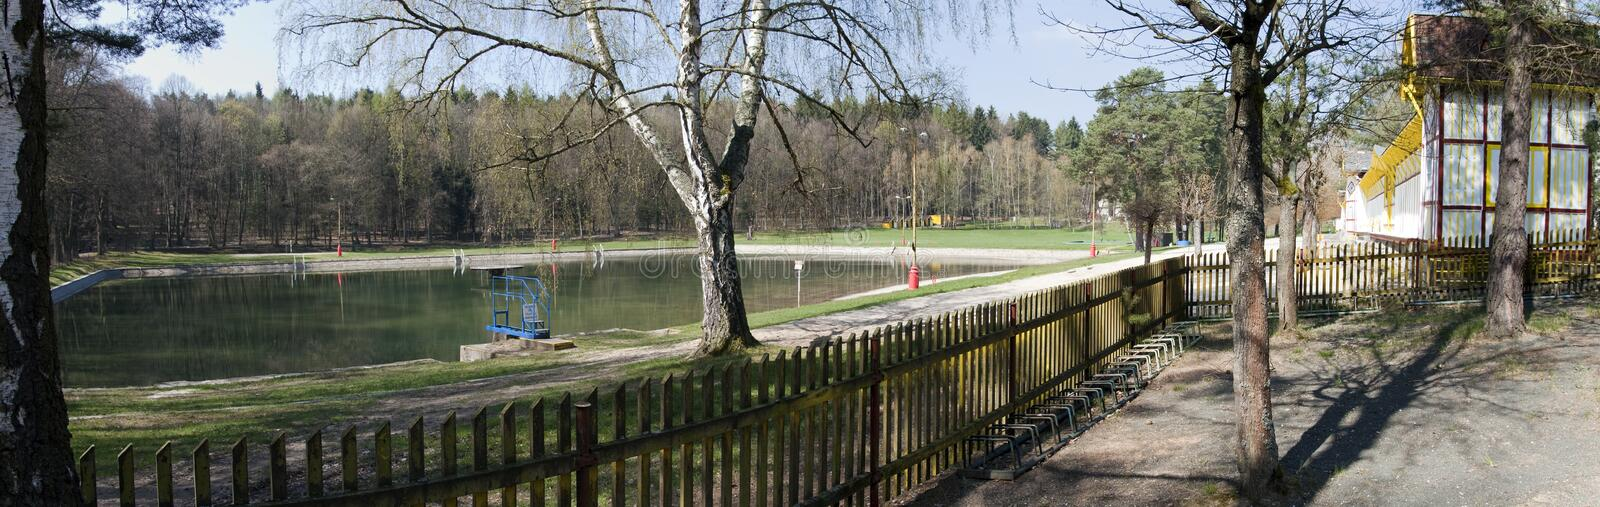 Old swimming pool called Dachova in Horice. Czech republic royalty free stock photos